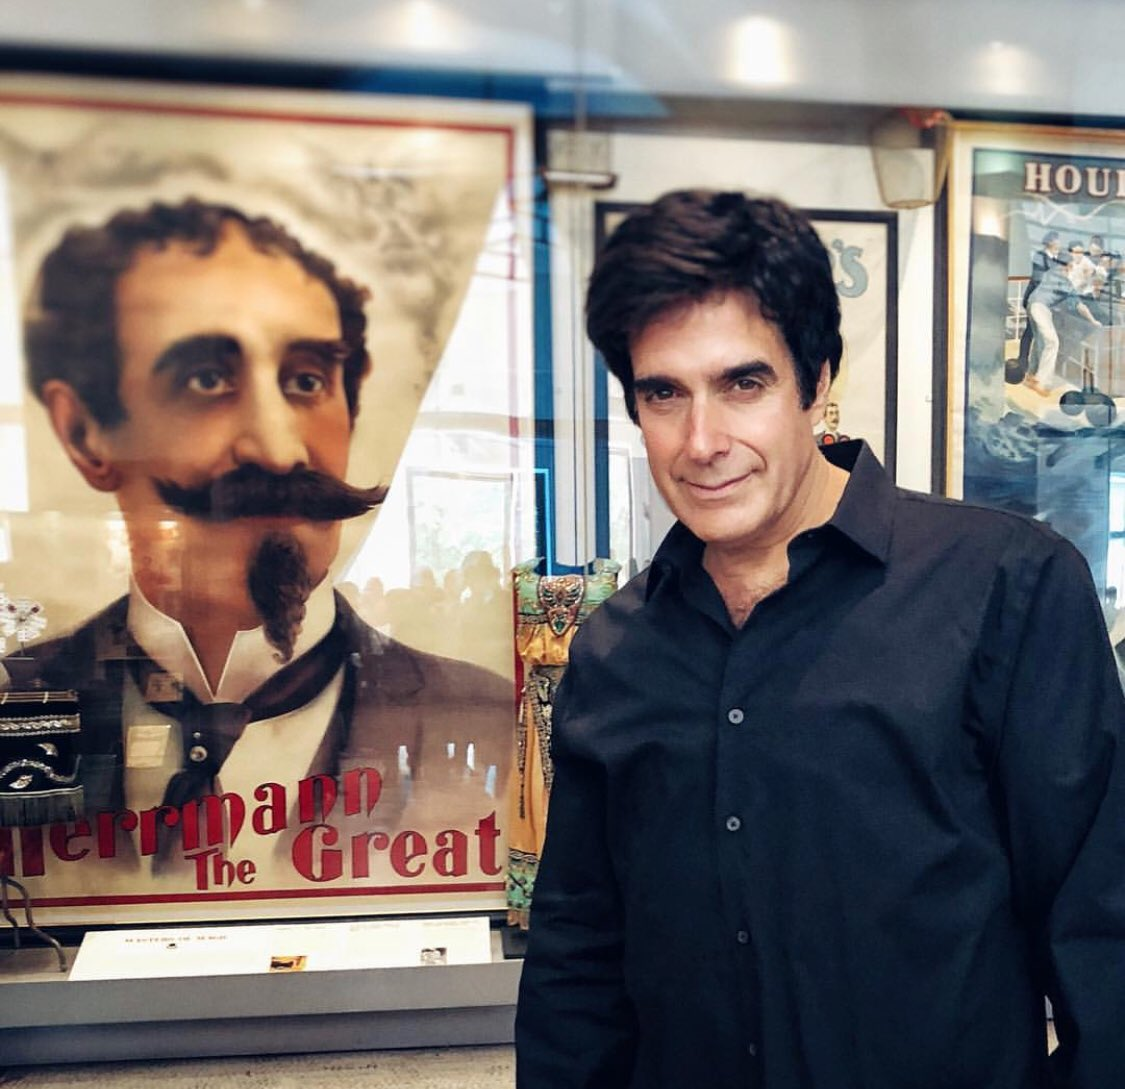 David Copperfield On Twitter Tune In My Instalive Facebook Live